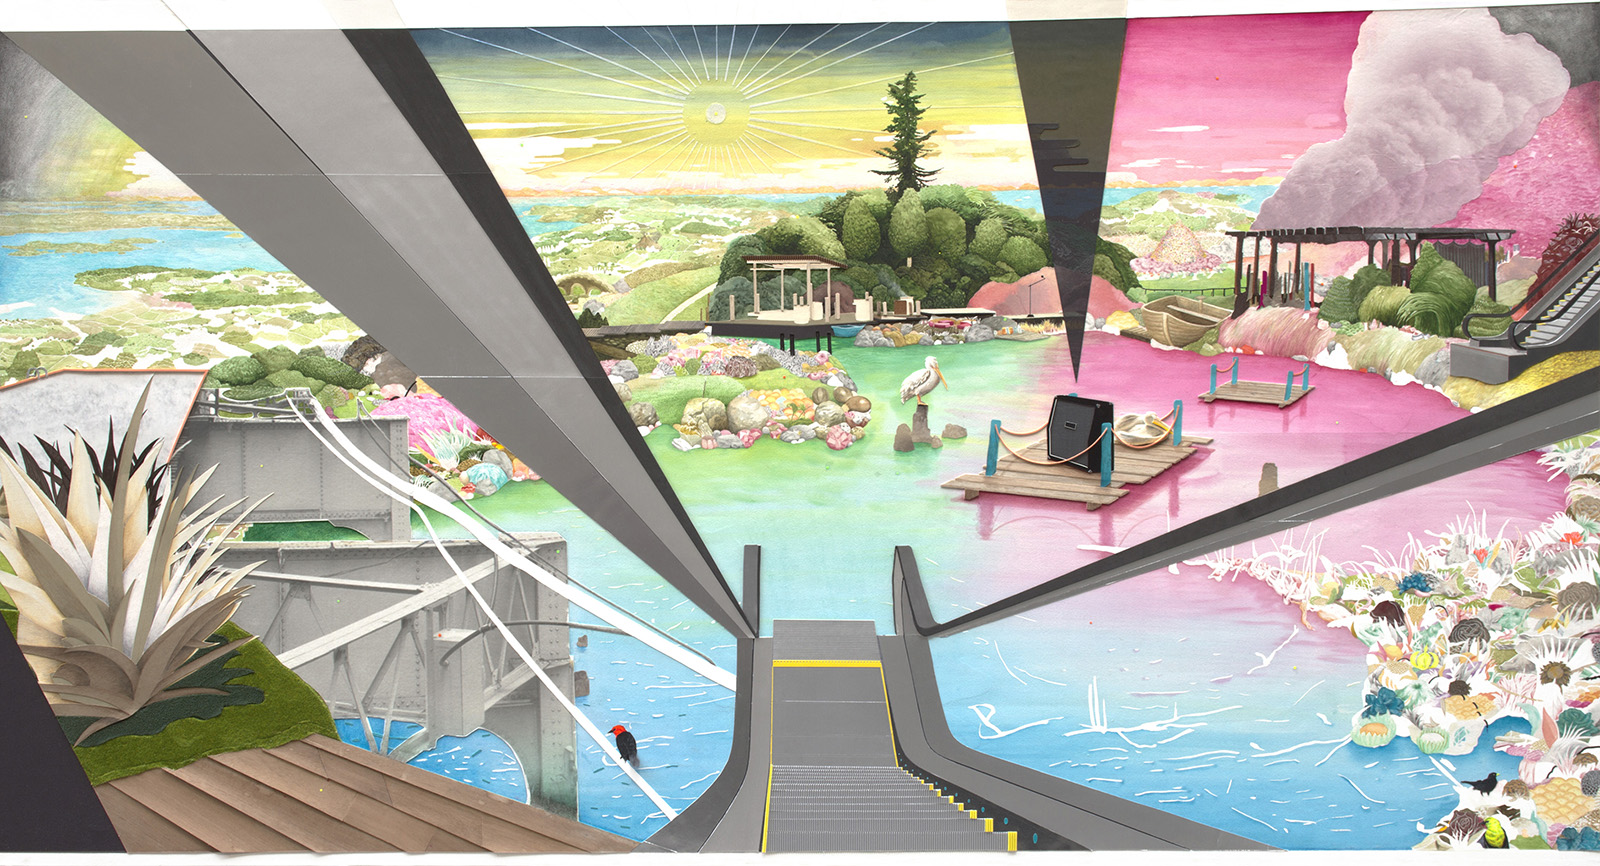 All you see - The wit of the staircase. 2013. Watercolour, crayons, markers, graphite and collage on paper. 135 x 250 cm